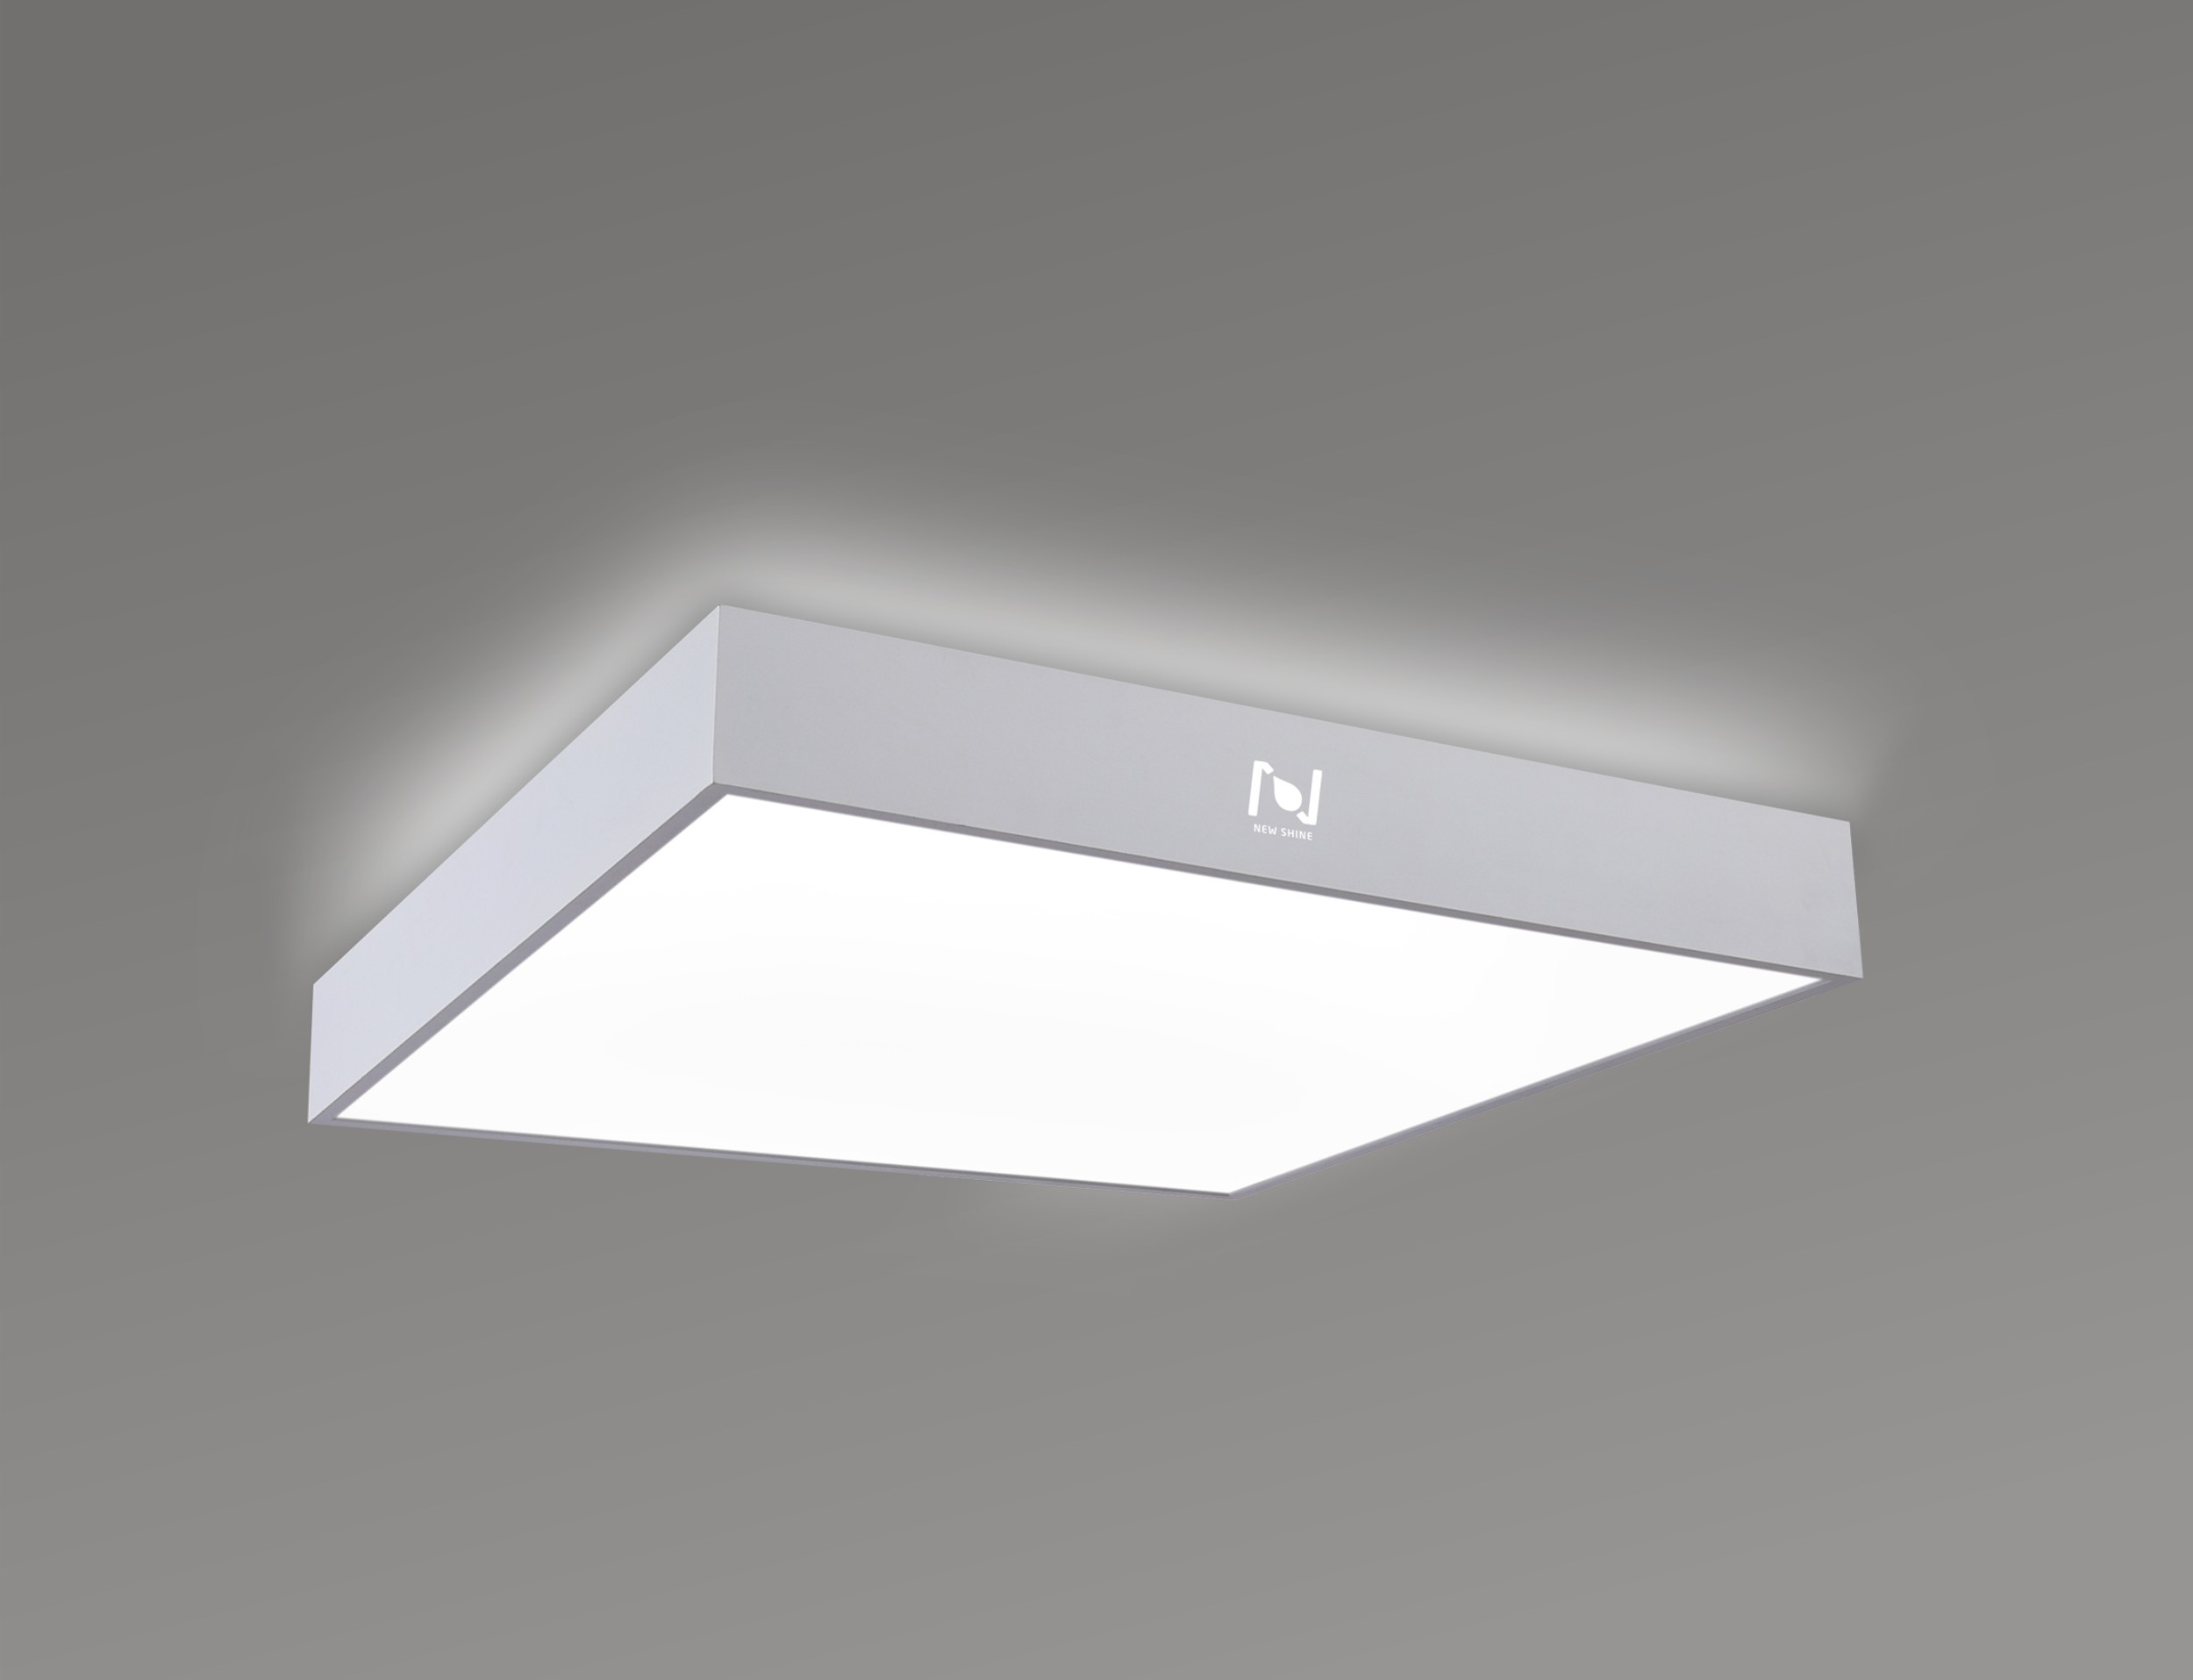 Up down square panel light LL0185UDM-80W